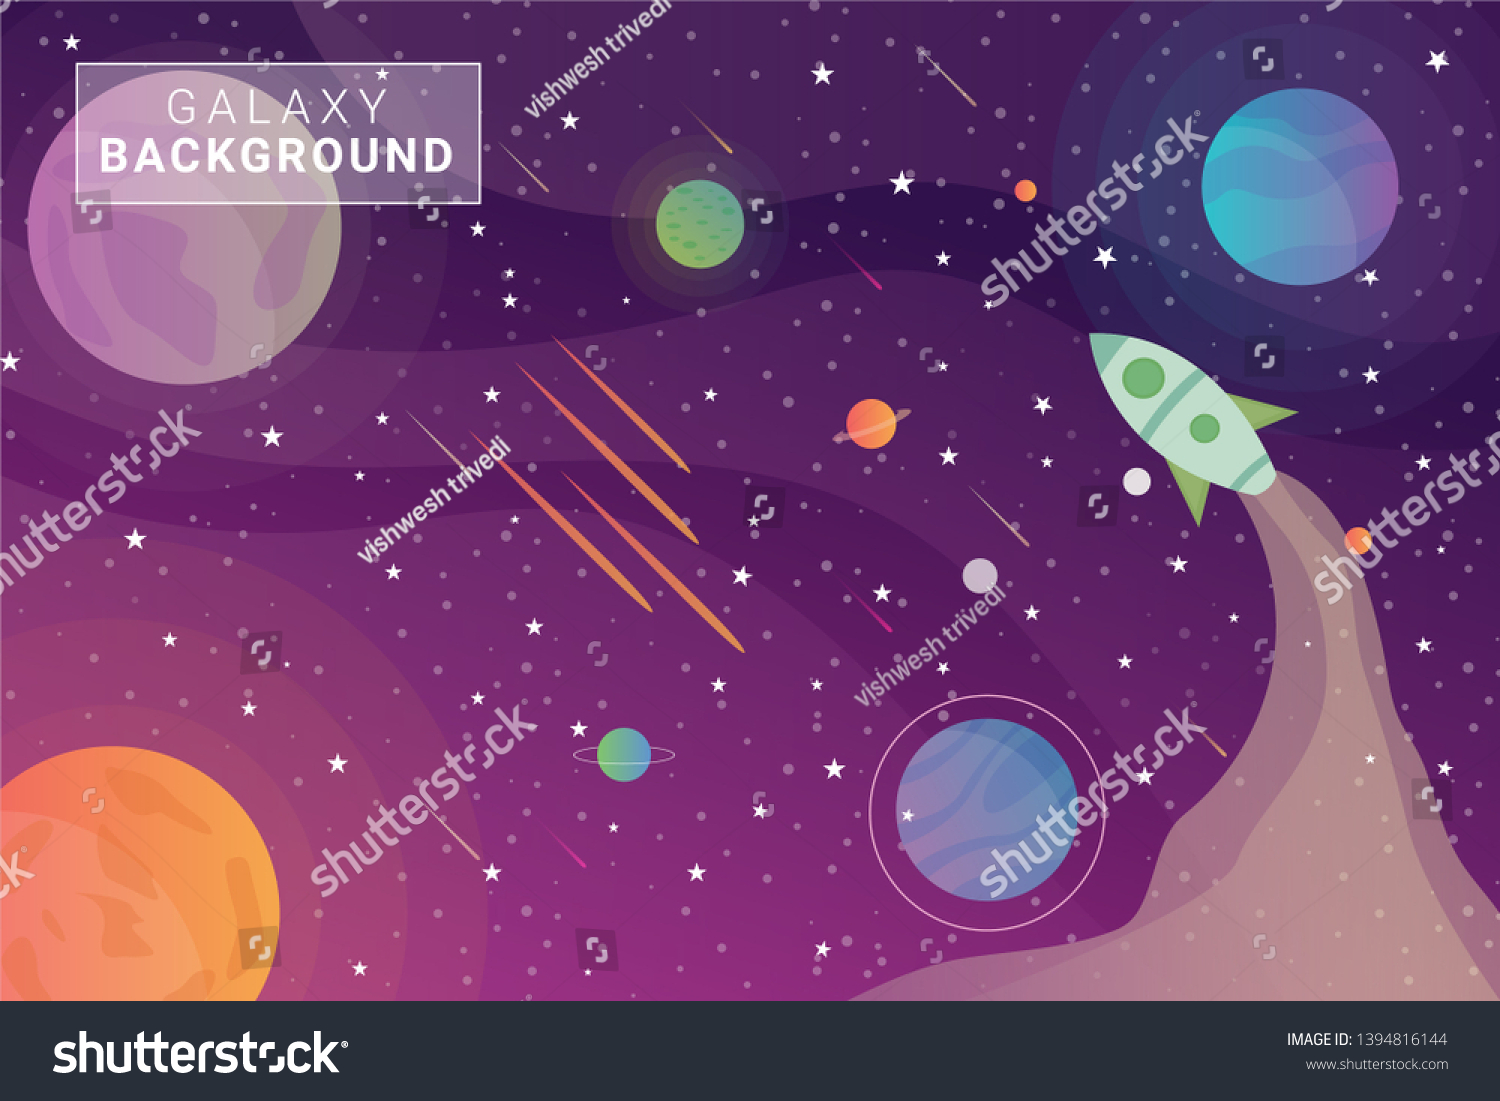 Gradient Colorful Galaxy Background Planets Vector Stock Vector Royalty Free 1394816144